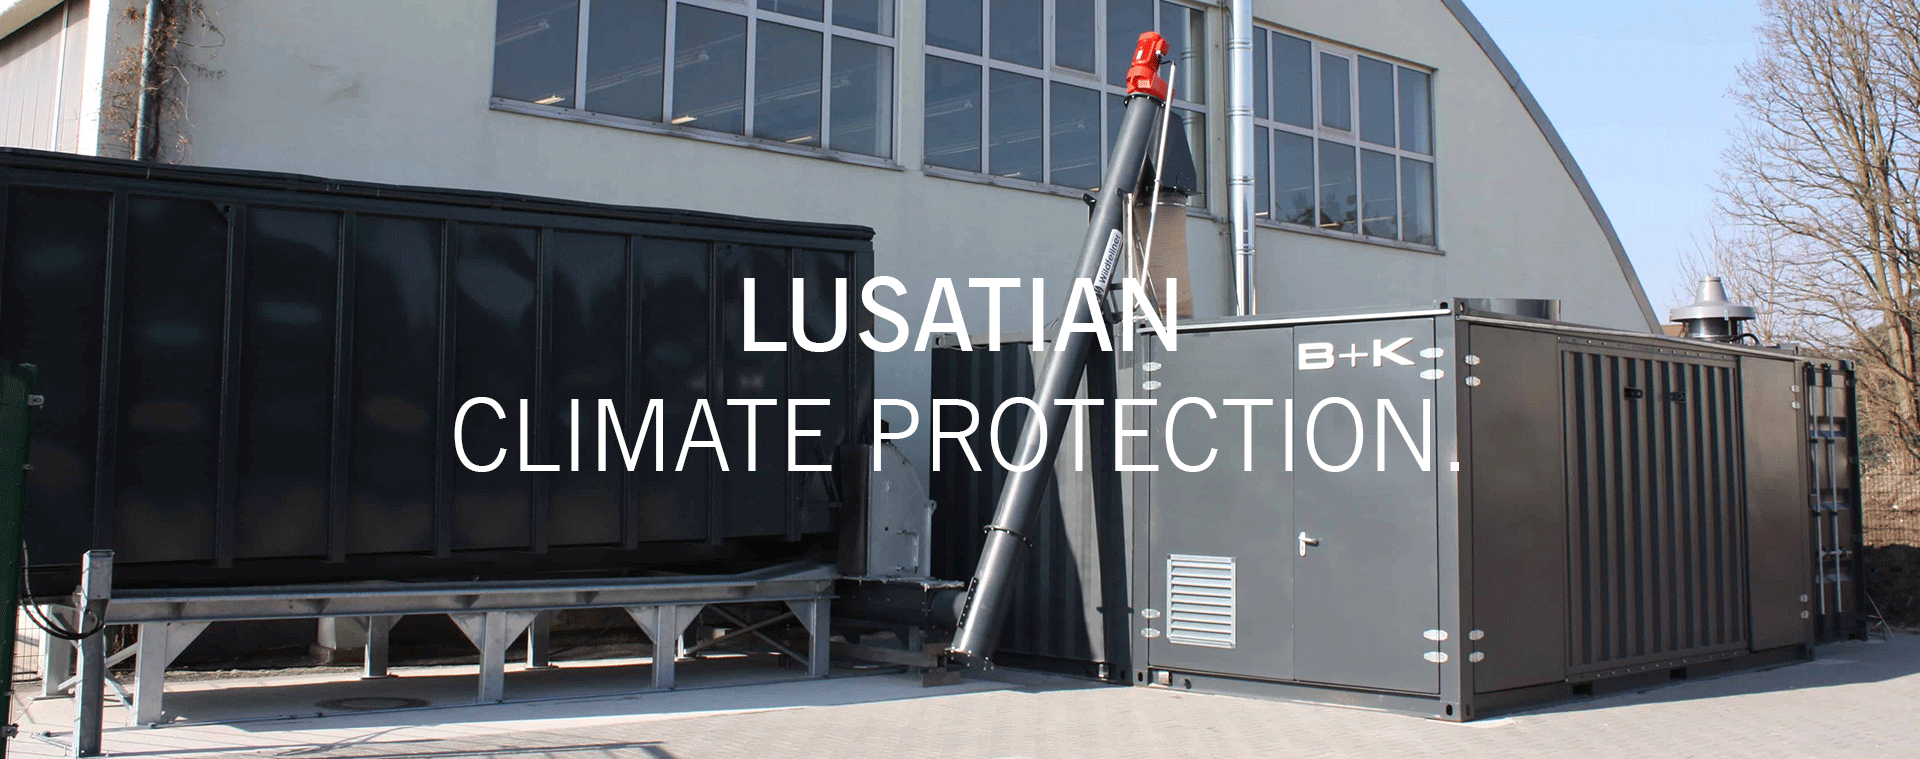 Lusatian climate protection